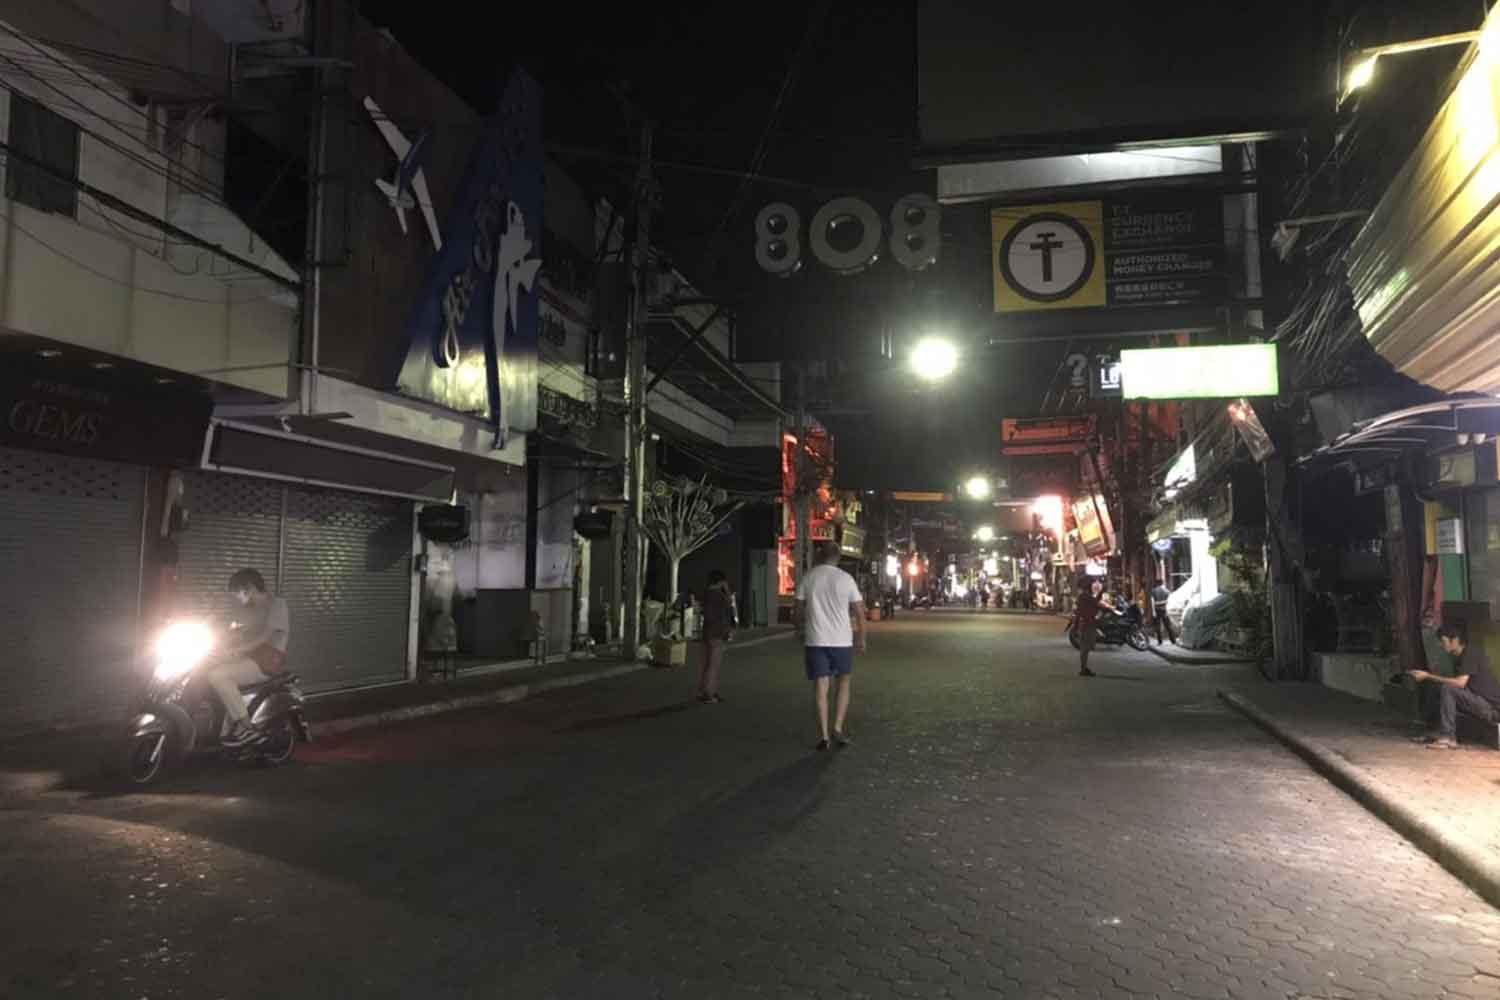 A usually busy street in Pattaya is quiet, almost deserted on Tuesday night after entertainment venues were closed because of Covid-19 disease. (Photo: Chaiyot Pupattanapong)